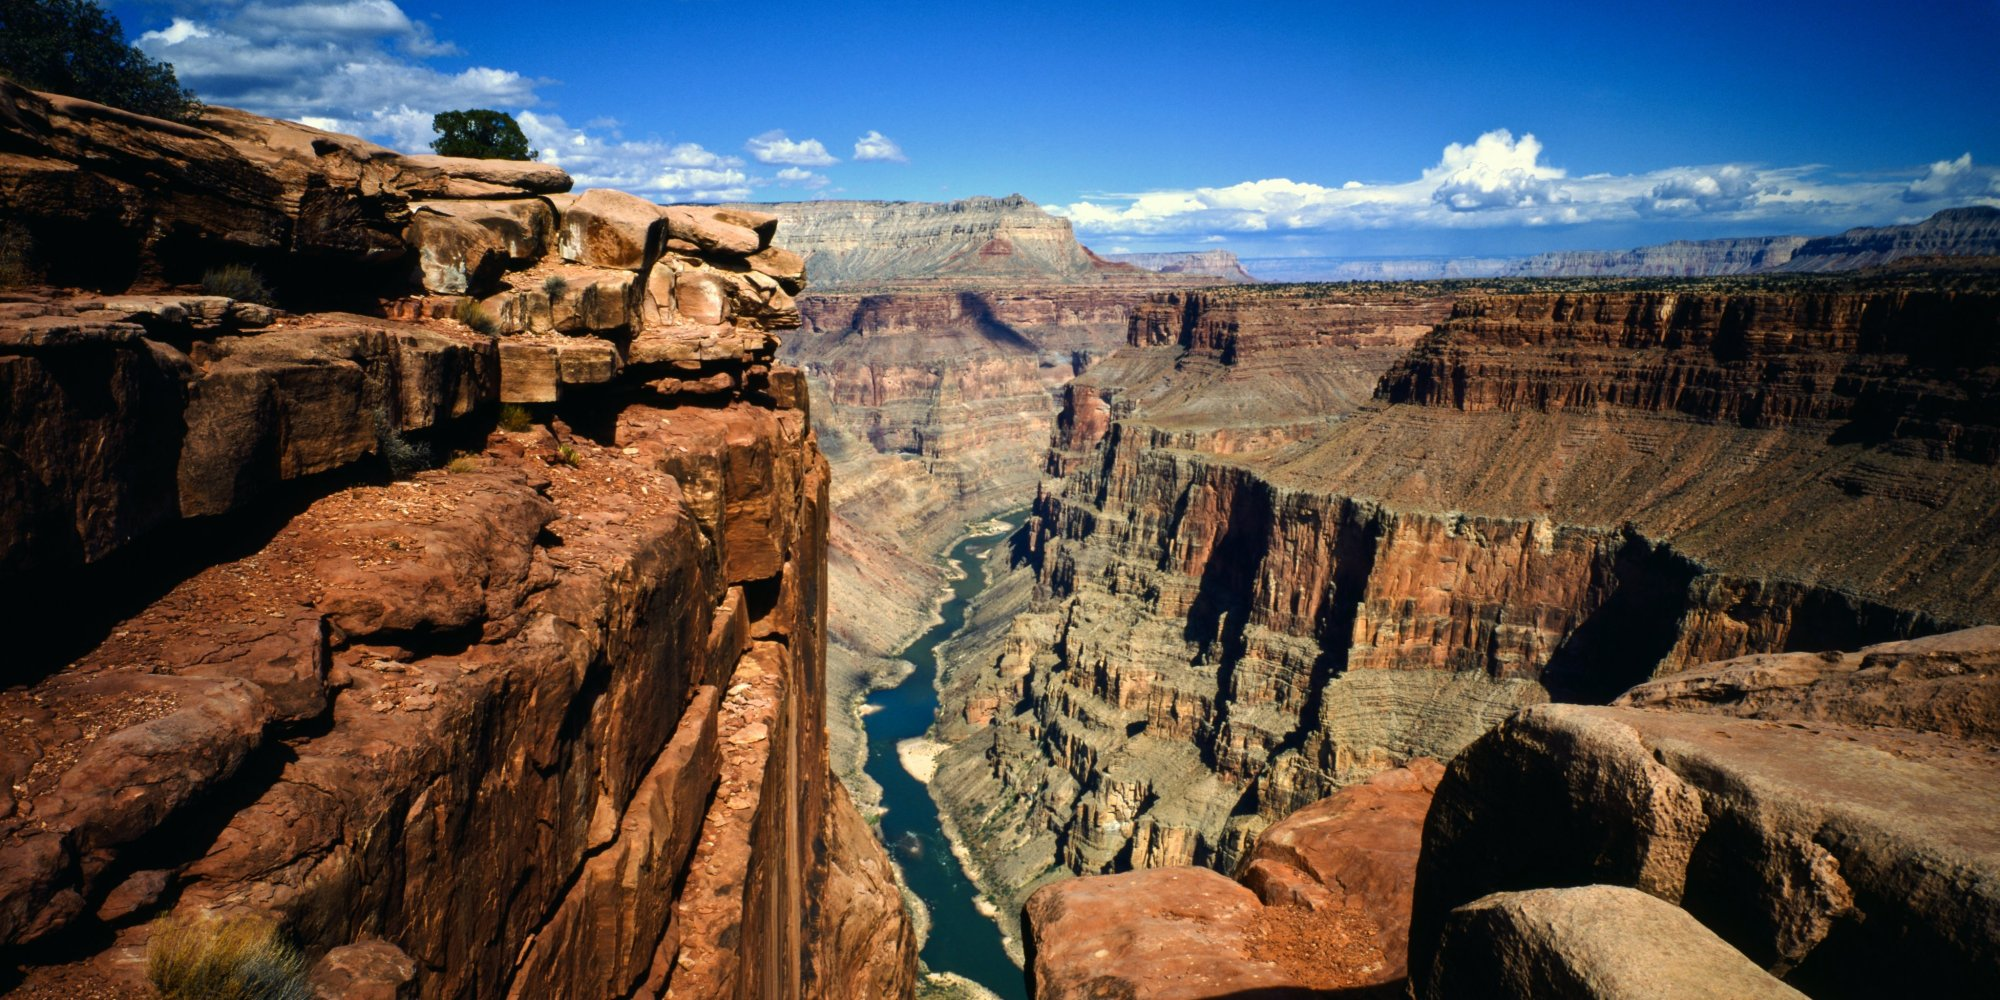 Image of The Grand Canyon